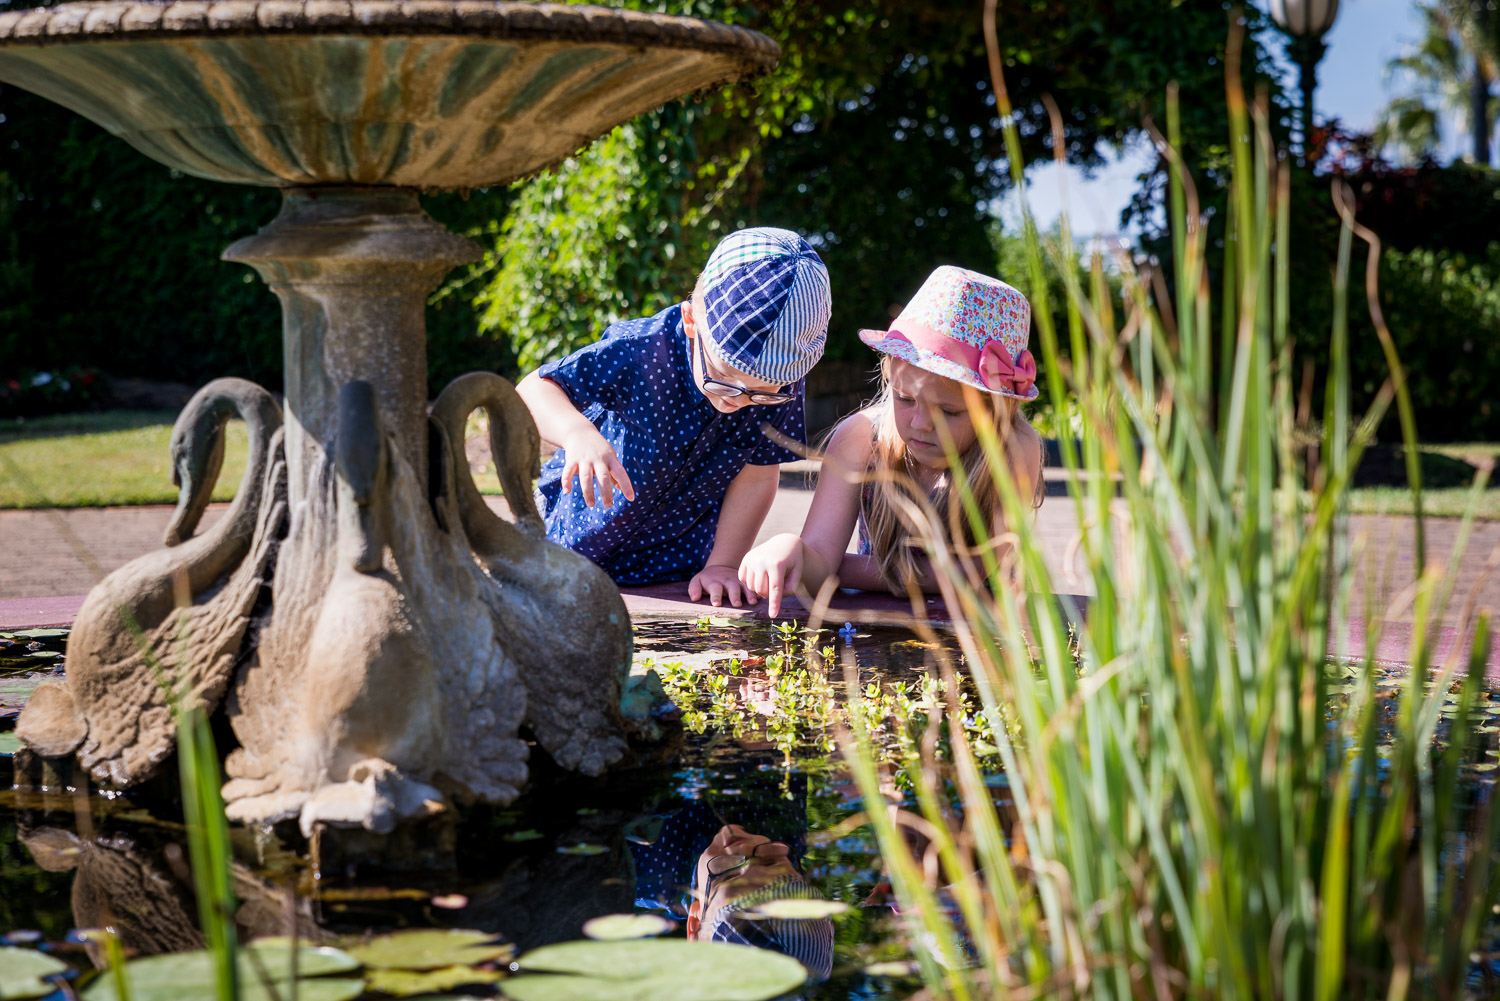 Kids playing in cottage garden pond